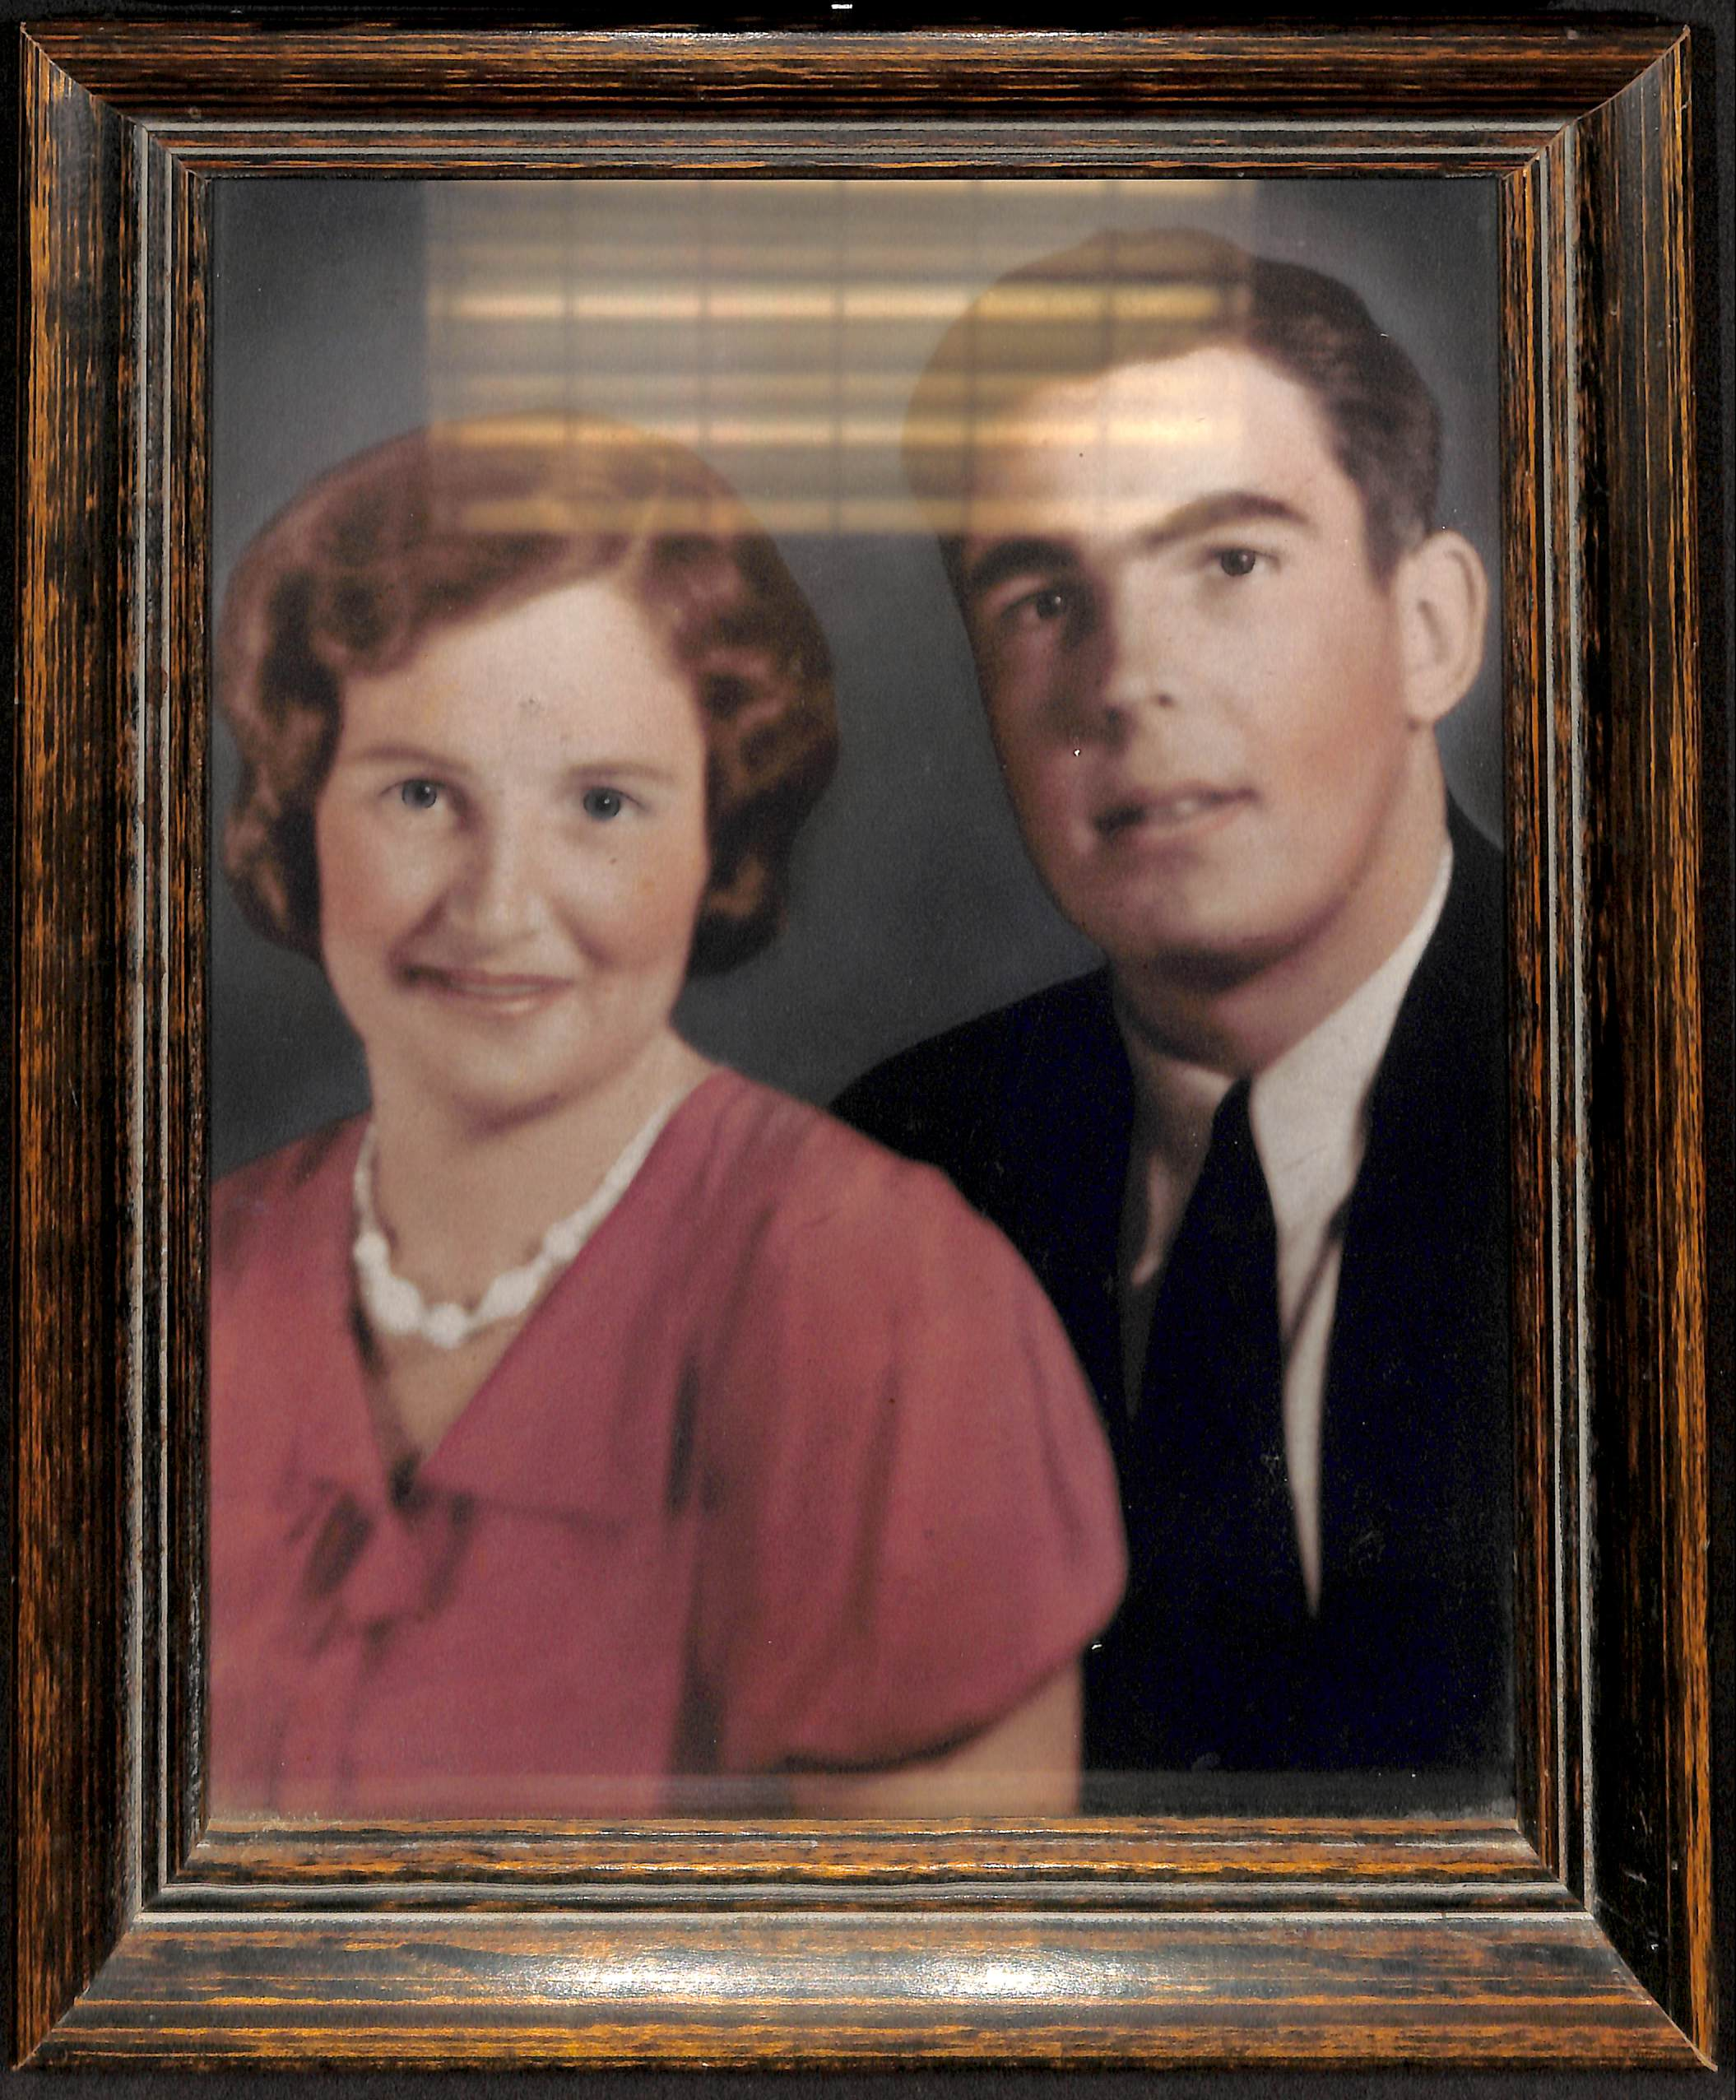 color photo of young man and woman